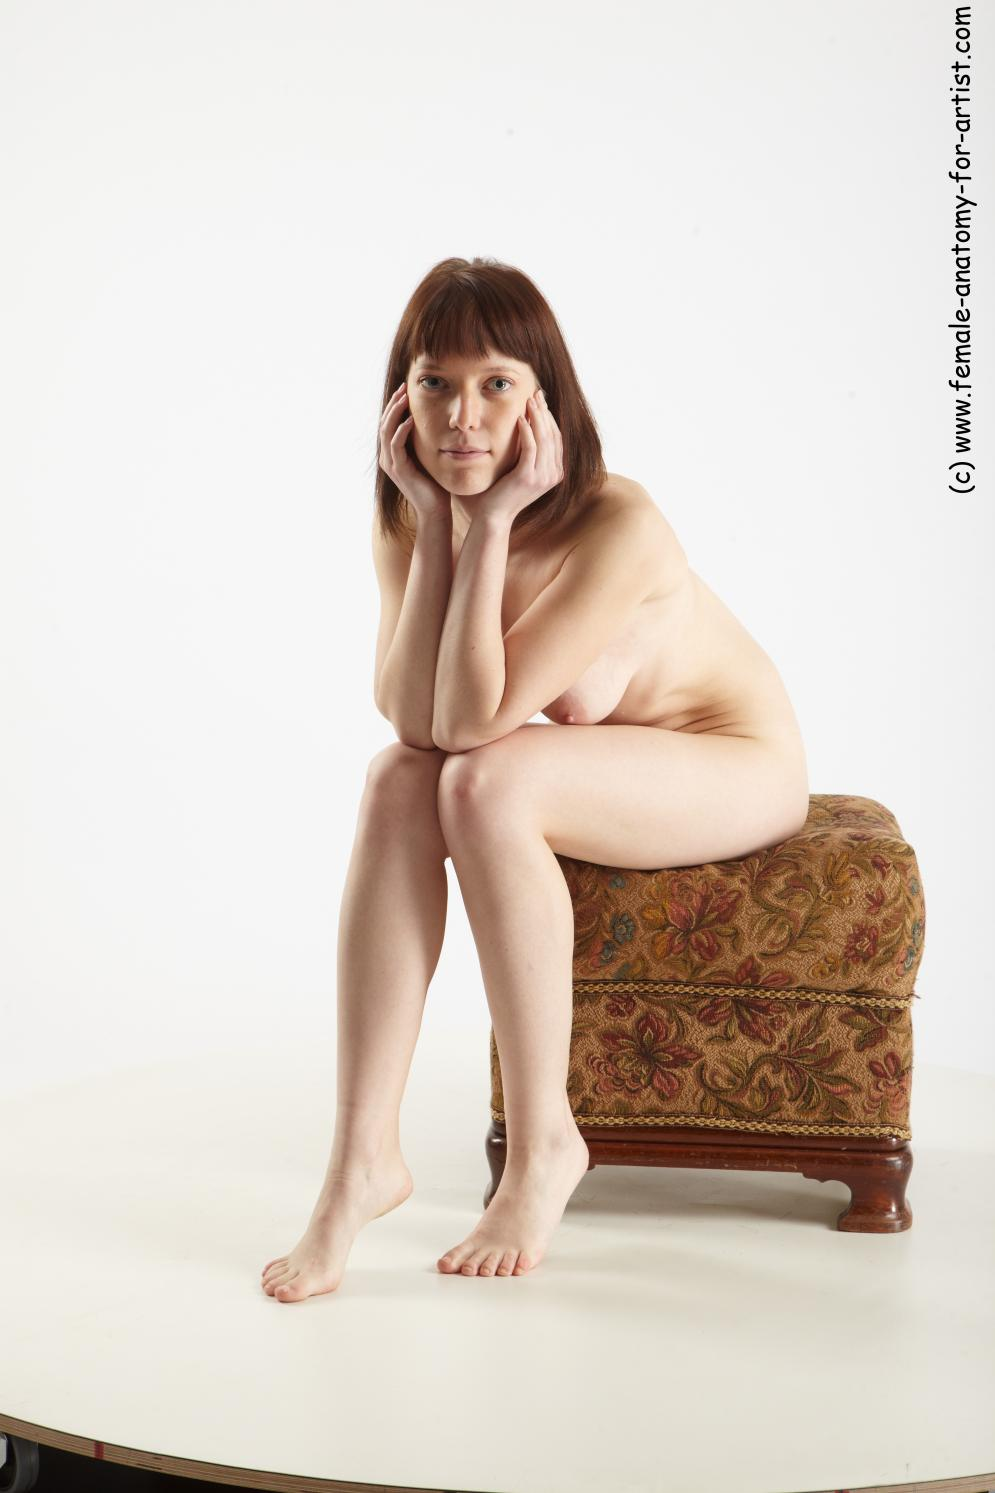 Image from Female sitting poses - nikola_01.jpg